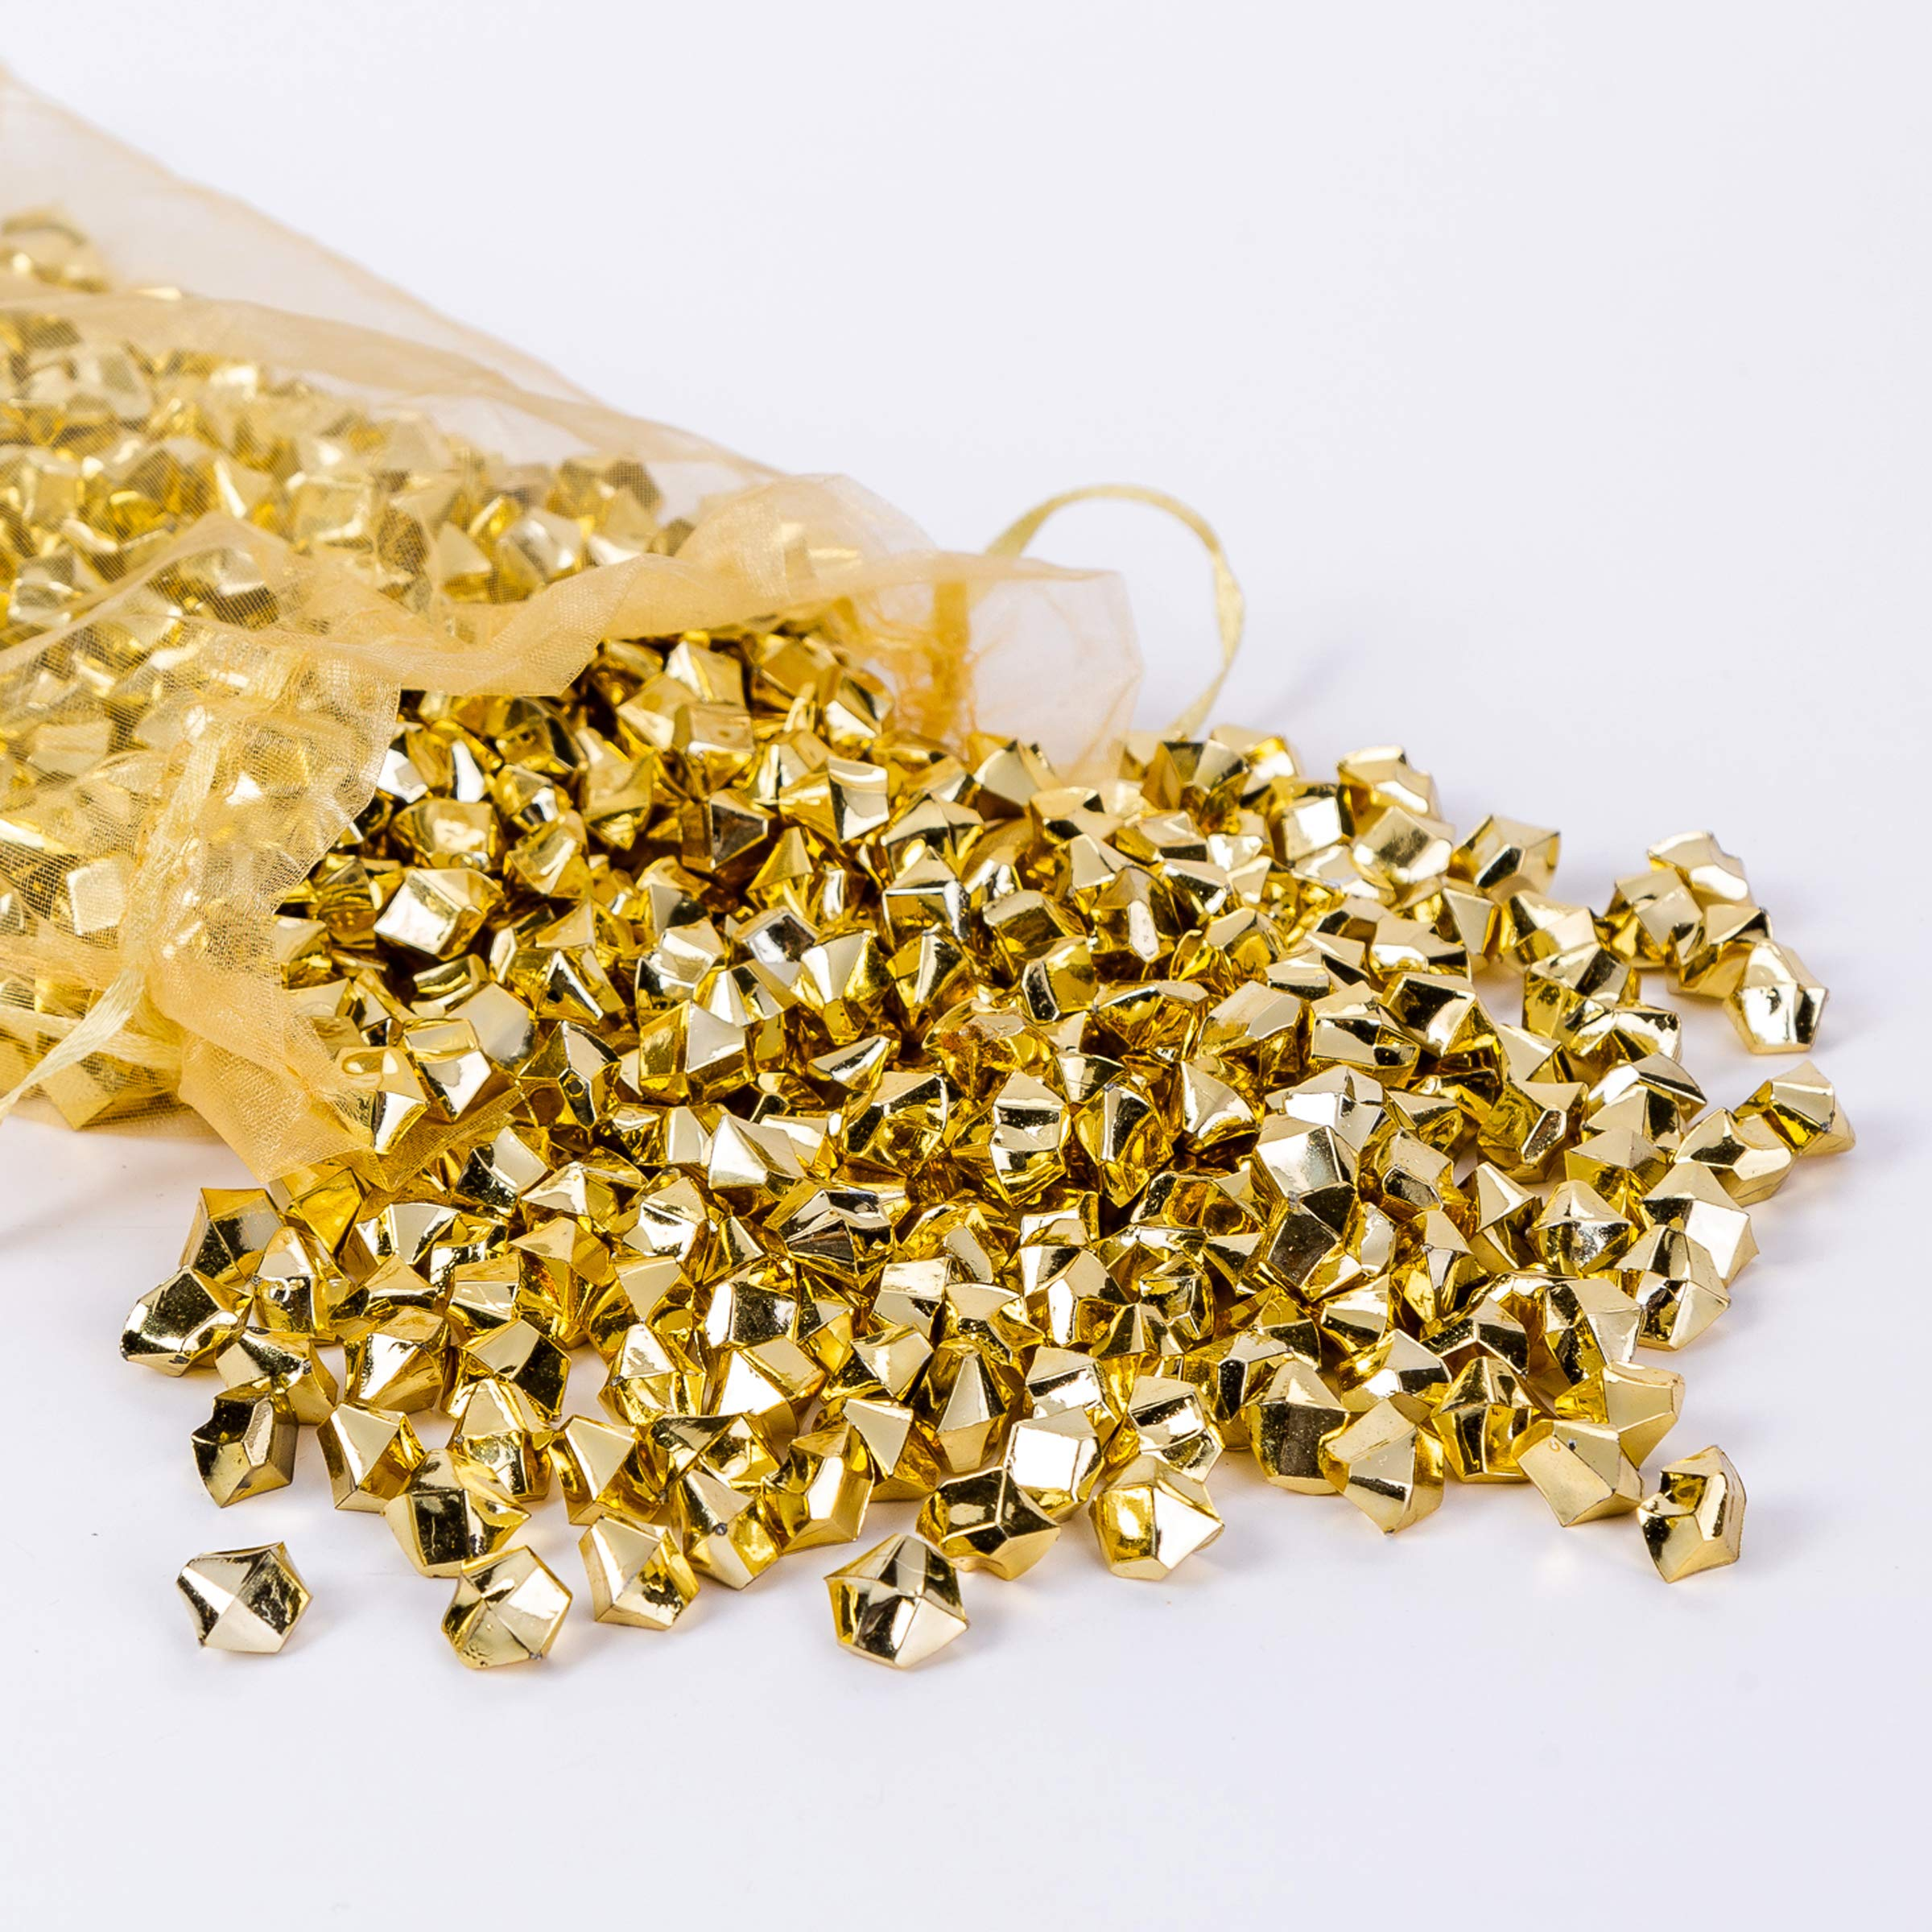 AiFanS Golden Nuggets for Table Scatter Decoration or Vase Filler(Metallic Gold,1.4cm,Pack of 755 Piece) by AiFanS